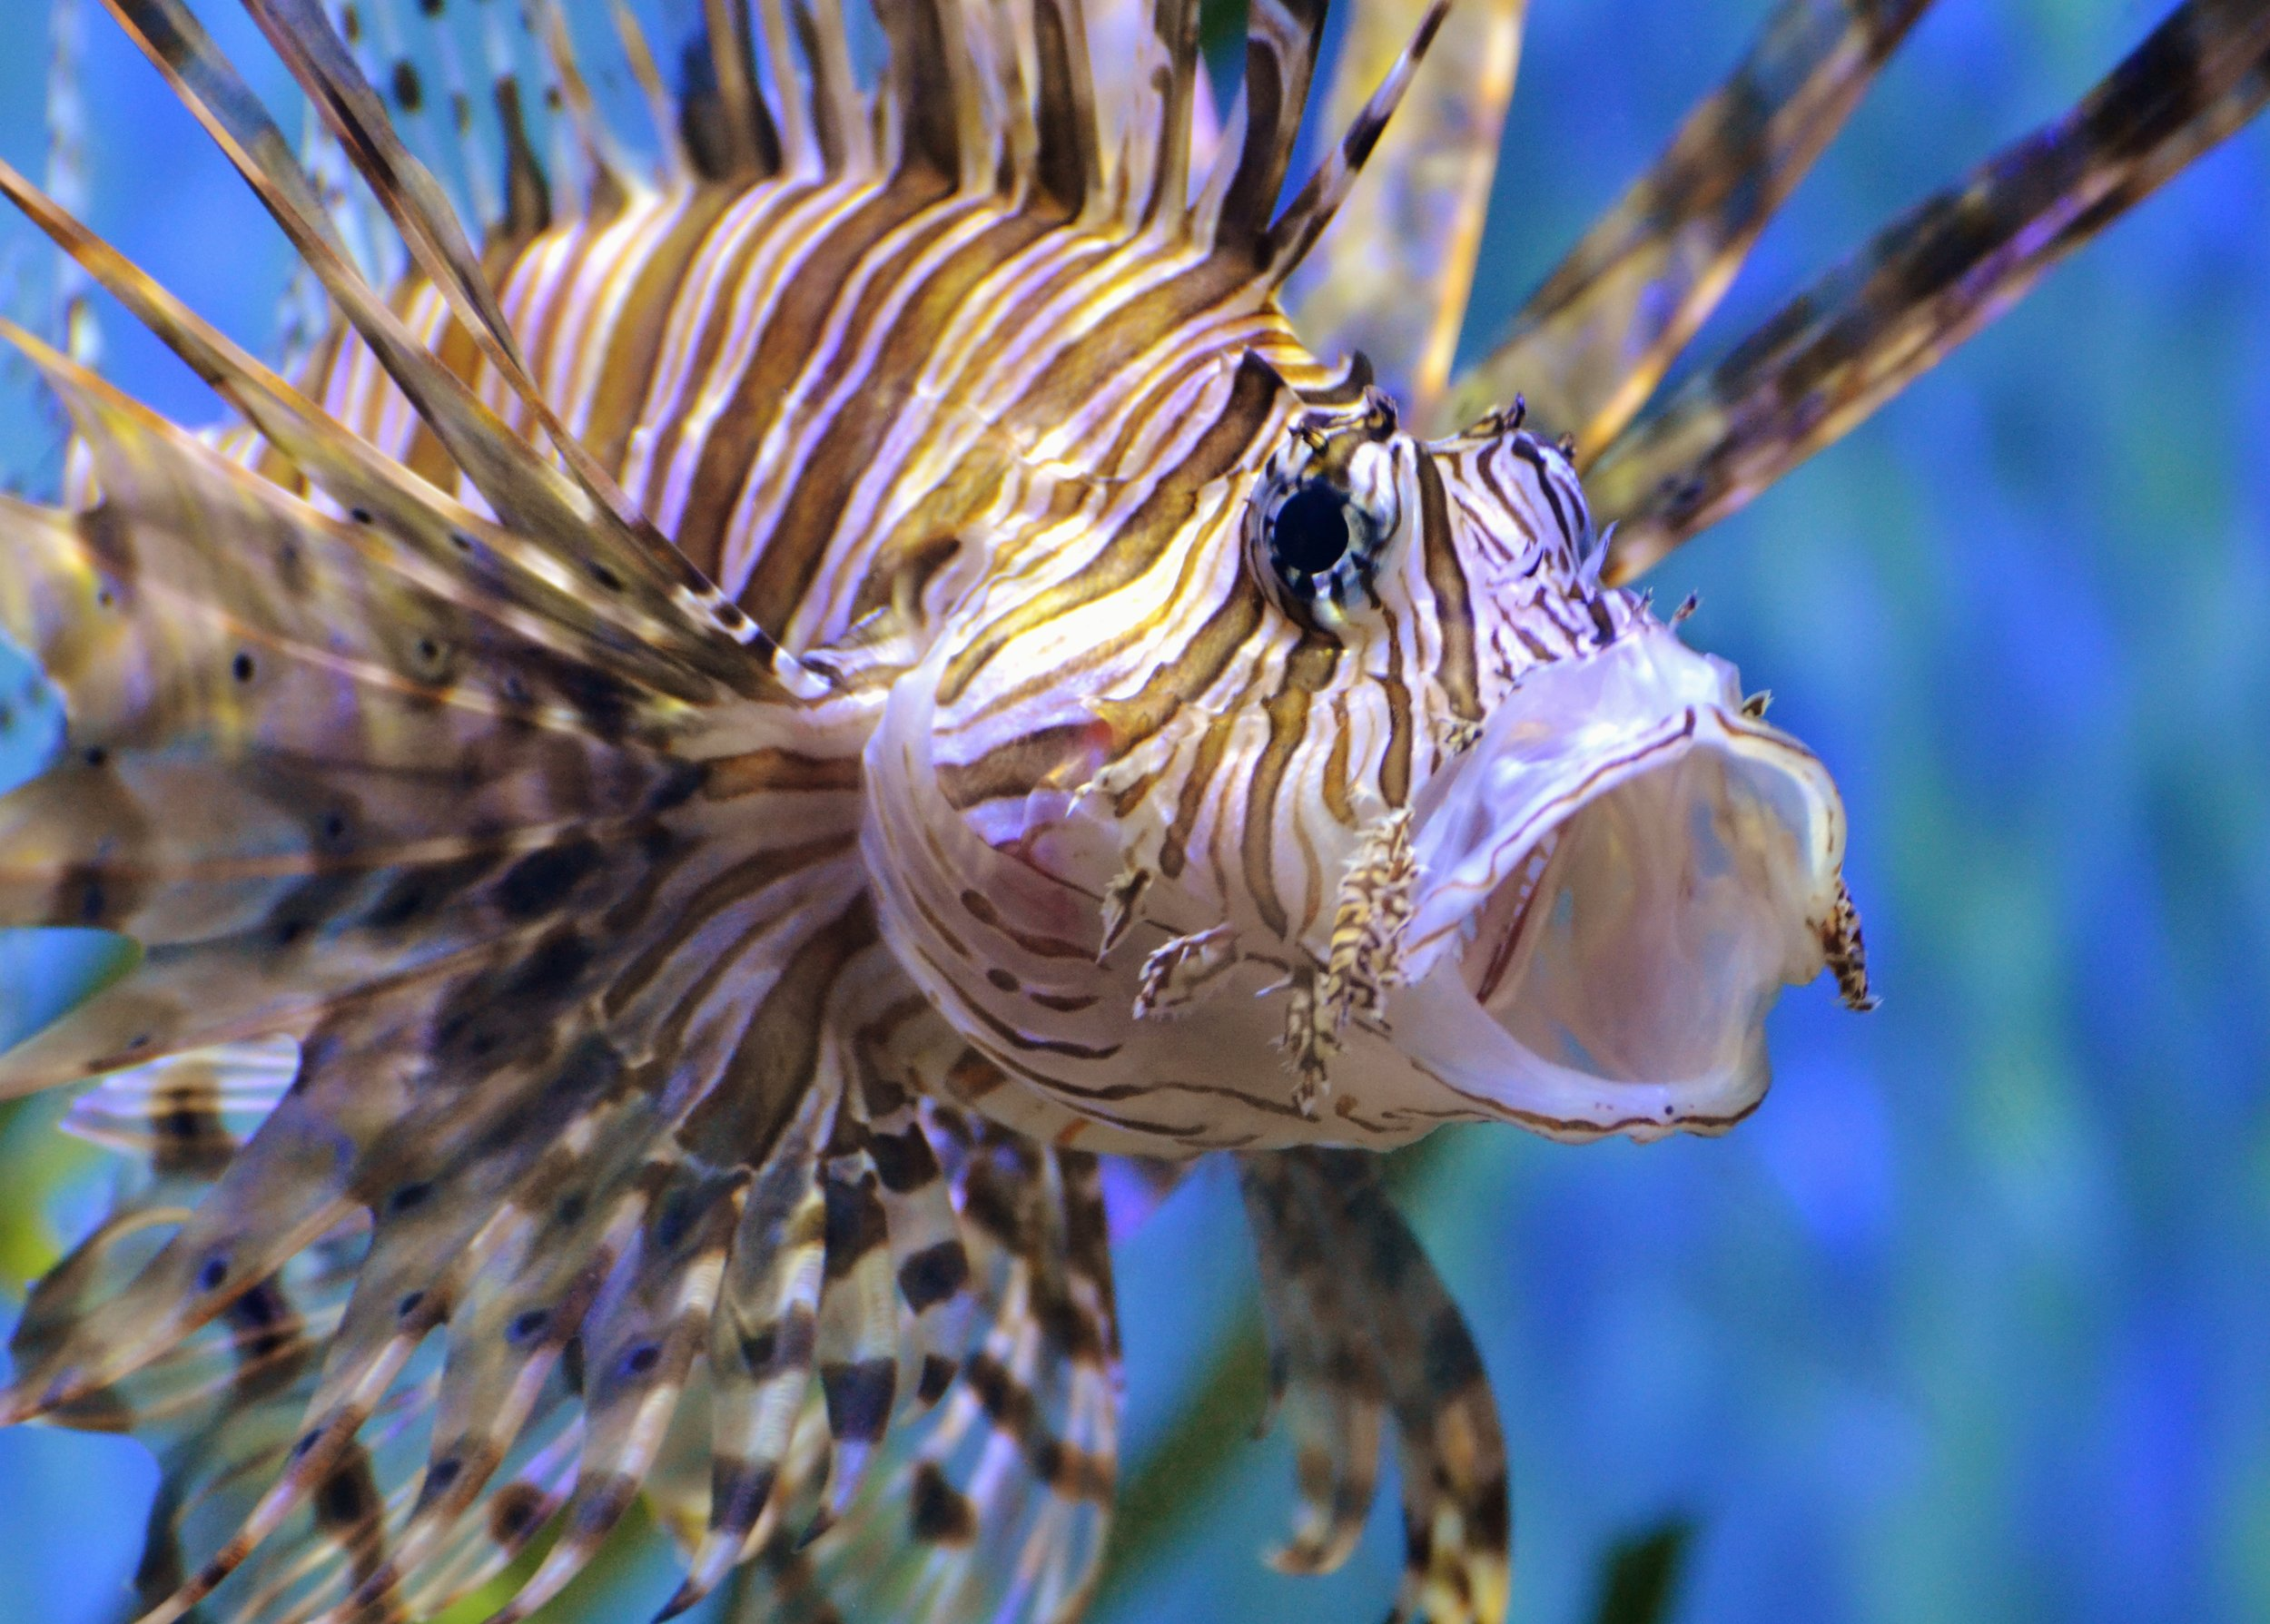 """Although there has been concern regarding the presence of ciguatera toxin in lionfish, a 2015 publication in  The Environmental Biology of Fishes  by Christie L. Wilcox and Mark A. Hixon states that """"...there have been no confirmed cases of ciguatoxin poisoning from eating lionfish, indicating that false positive tests may be occurring."""" Wilcox, C.L. & Hixon, M.A. Environ Biol Fish (2015) 98: 961. https://doi.org/10.1007/s10641-014-0313-0"""